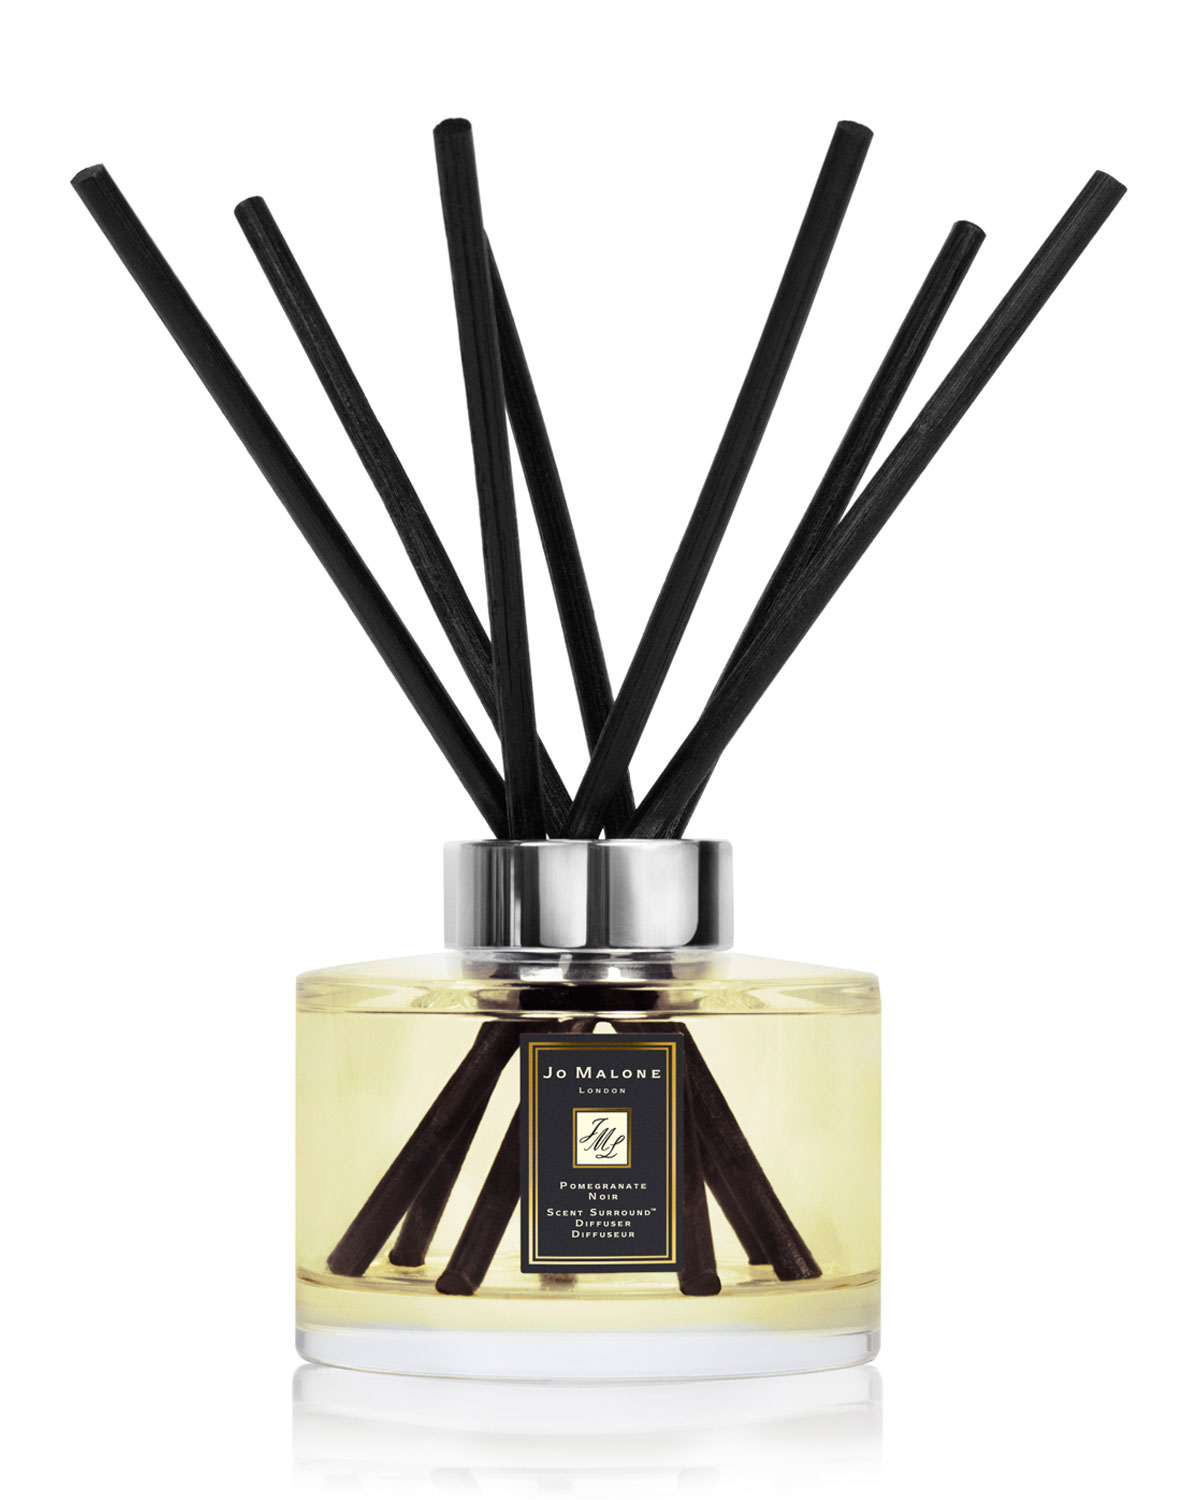 Pomegranate Noir Diffuser, 165 mL - Jo Malone London